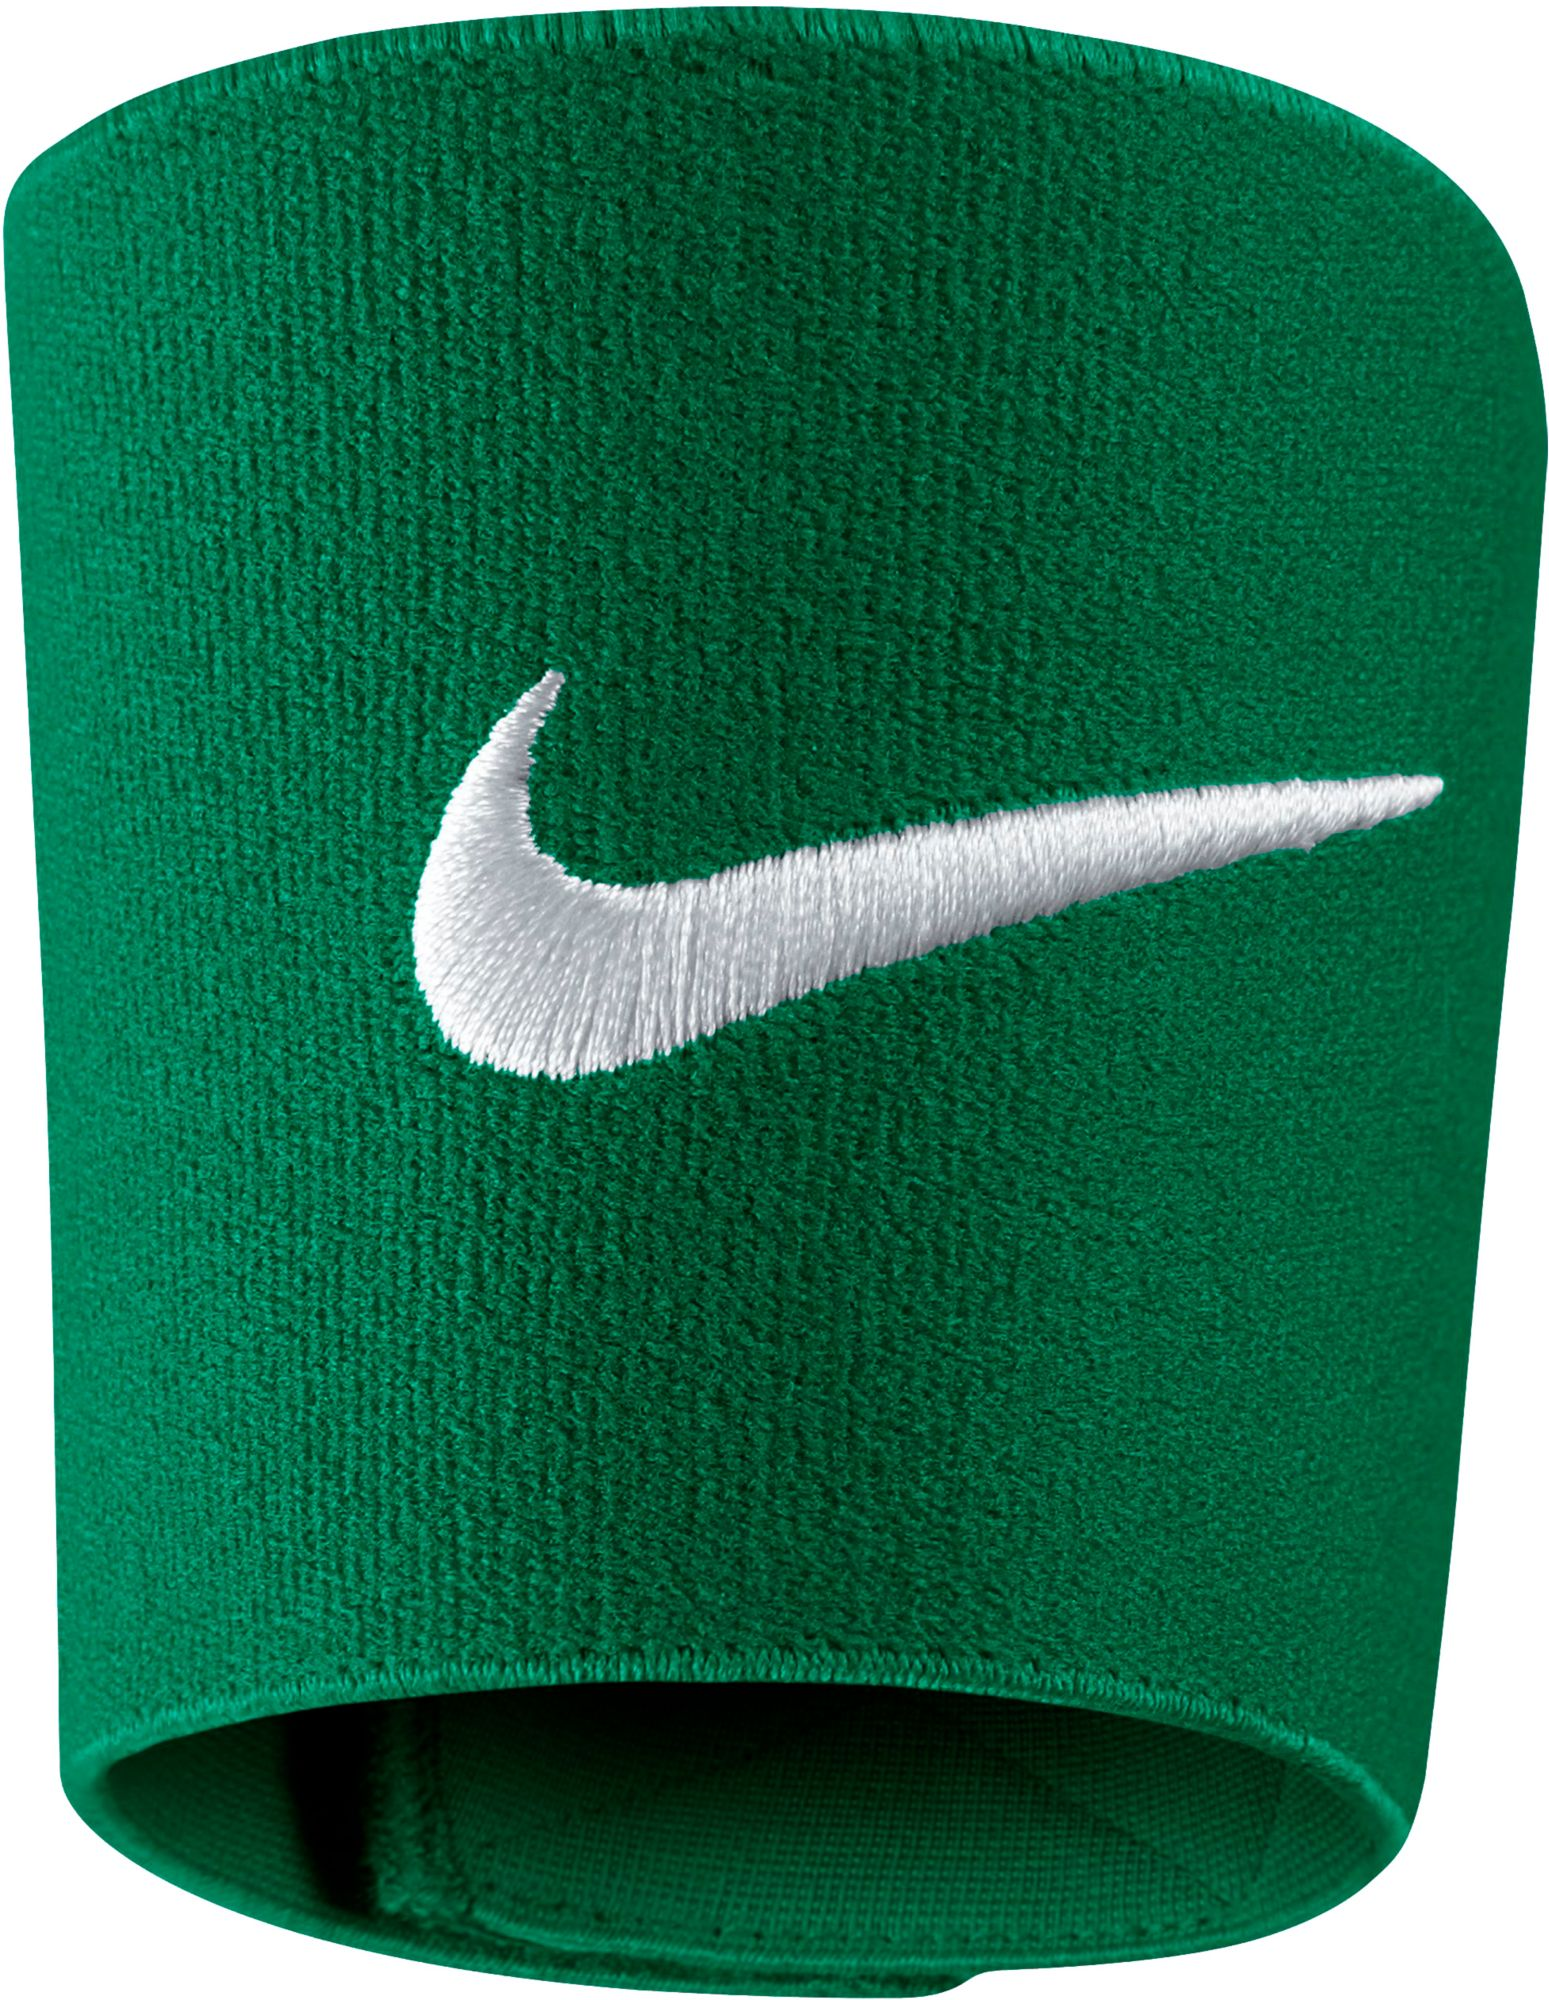 d520fdcaeec0 nike-soccer-shin-guard-stays by nike